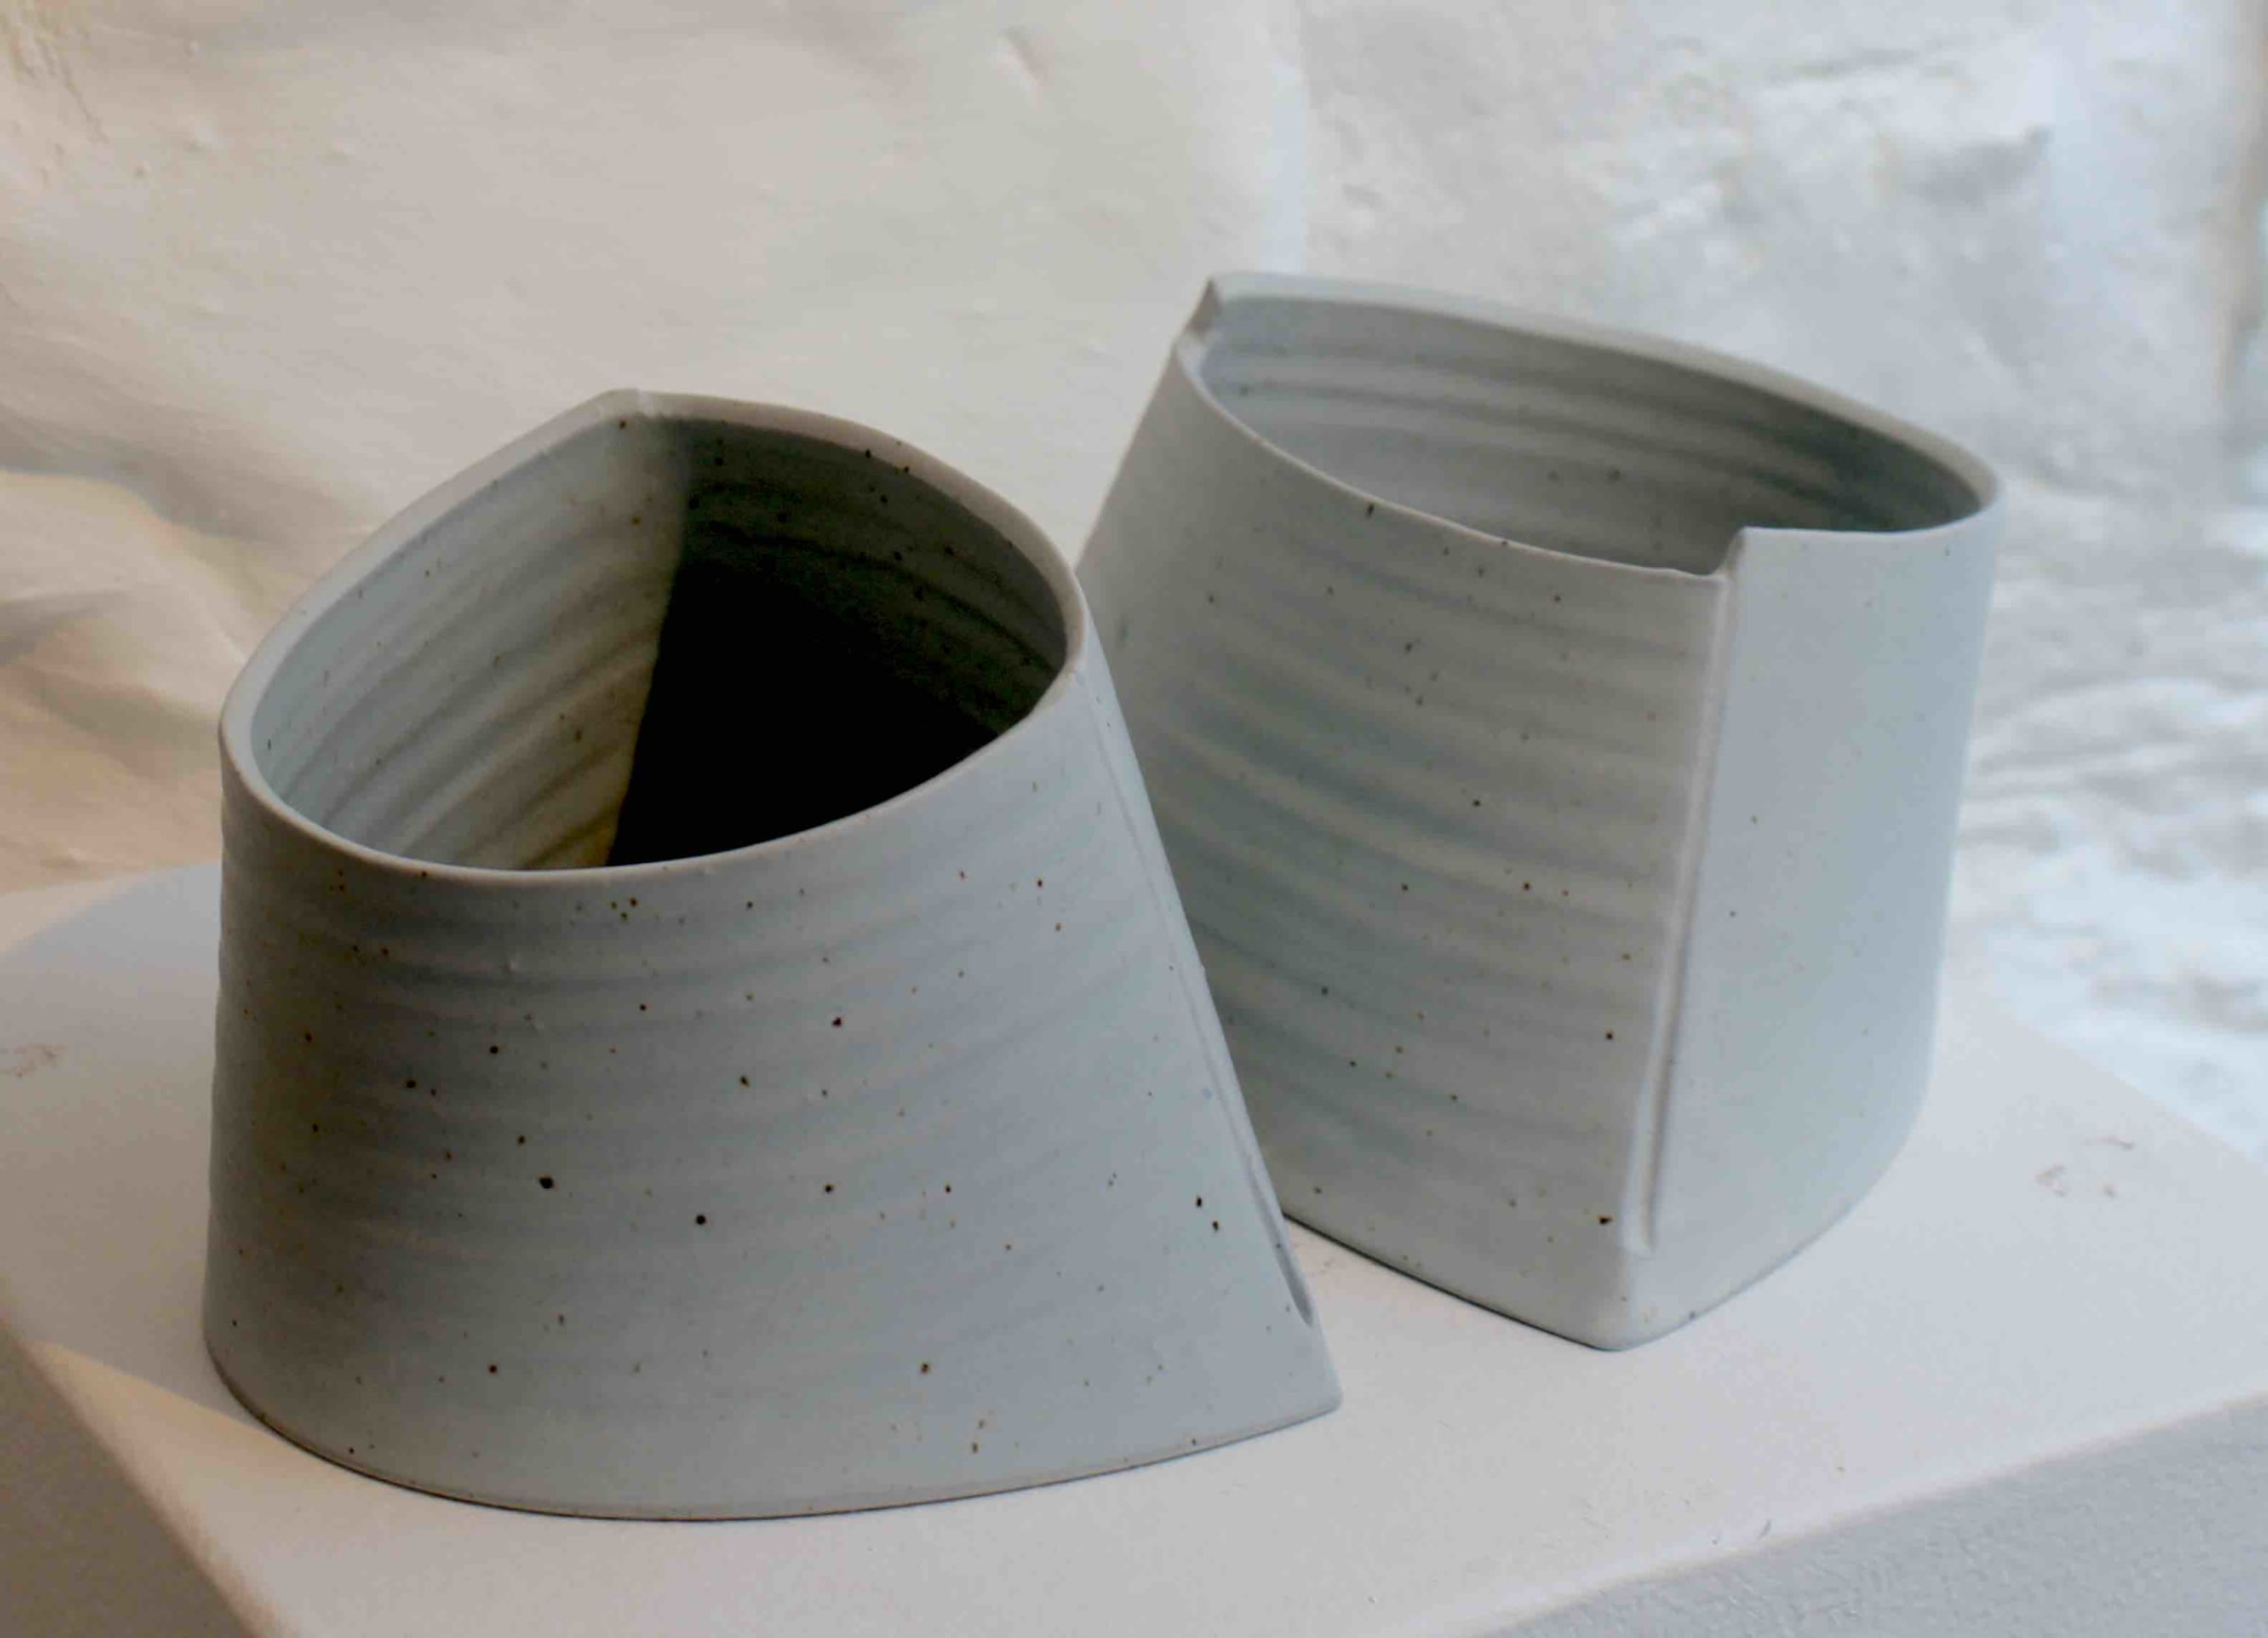 """<span class=""""link fancybox-details-link""""><a href=""""/artists/99-carina-ciscato/works/5768-carina-ciscato-pair-of-coloured-semi-elliptical-2018/"""">View Detail Page</a></span><div class=""""artist""""><strong>Carina Ciscato</strong></div> b. 1970 <div class=""""title""""><em>Pair of Coloured Semi Elliptical</em>, 2018</div> <div class=""""signed_and_dated"""">porcelain</div> <div class=""""medium"""">porcelain</div> <div class=""""dimensions"""">9 x 12 cm<br /> 3 1/2 x 4 3/4 inches</div><div class=""""price"""">£600.00</div><div class=""""copyright_line"""">OwnArt: £60 x 10 Months, 0% APR</div>"""